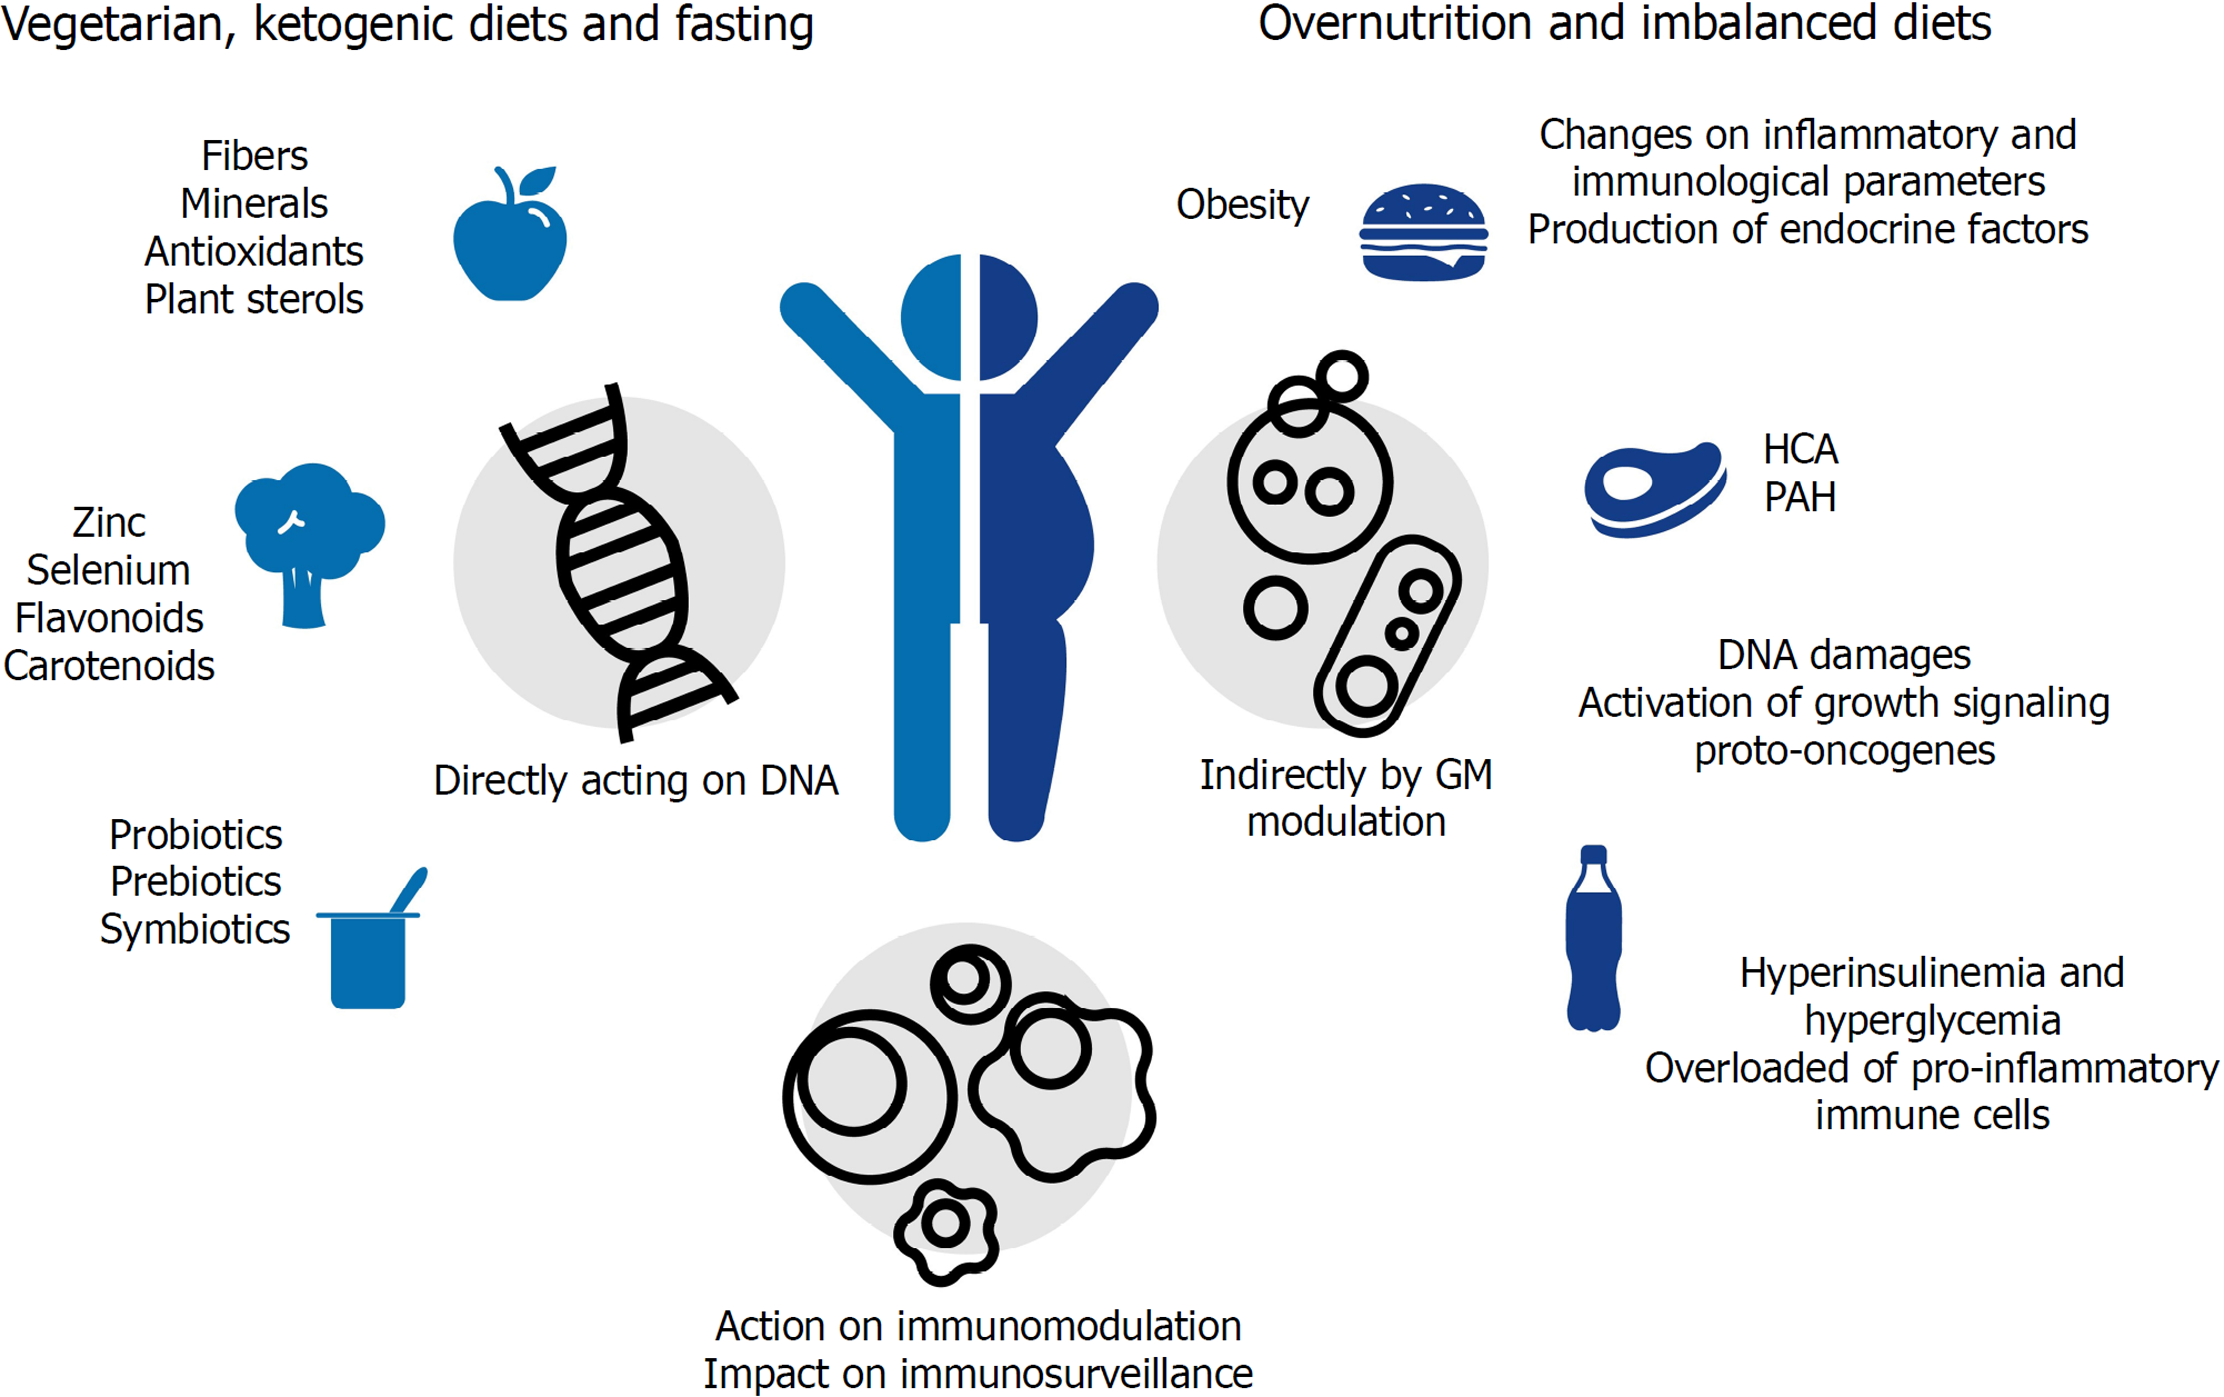 Role Of Diet And Gut Microbiota On Colorectal Cancer Immunomodulation